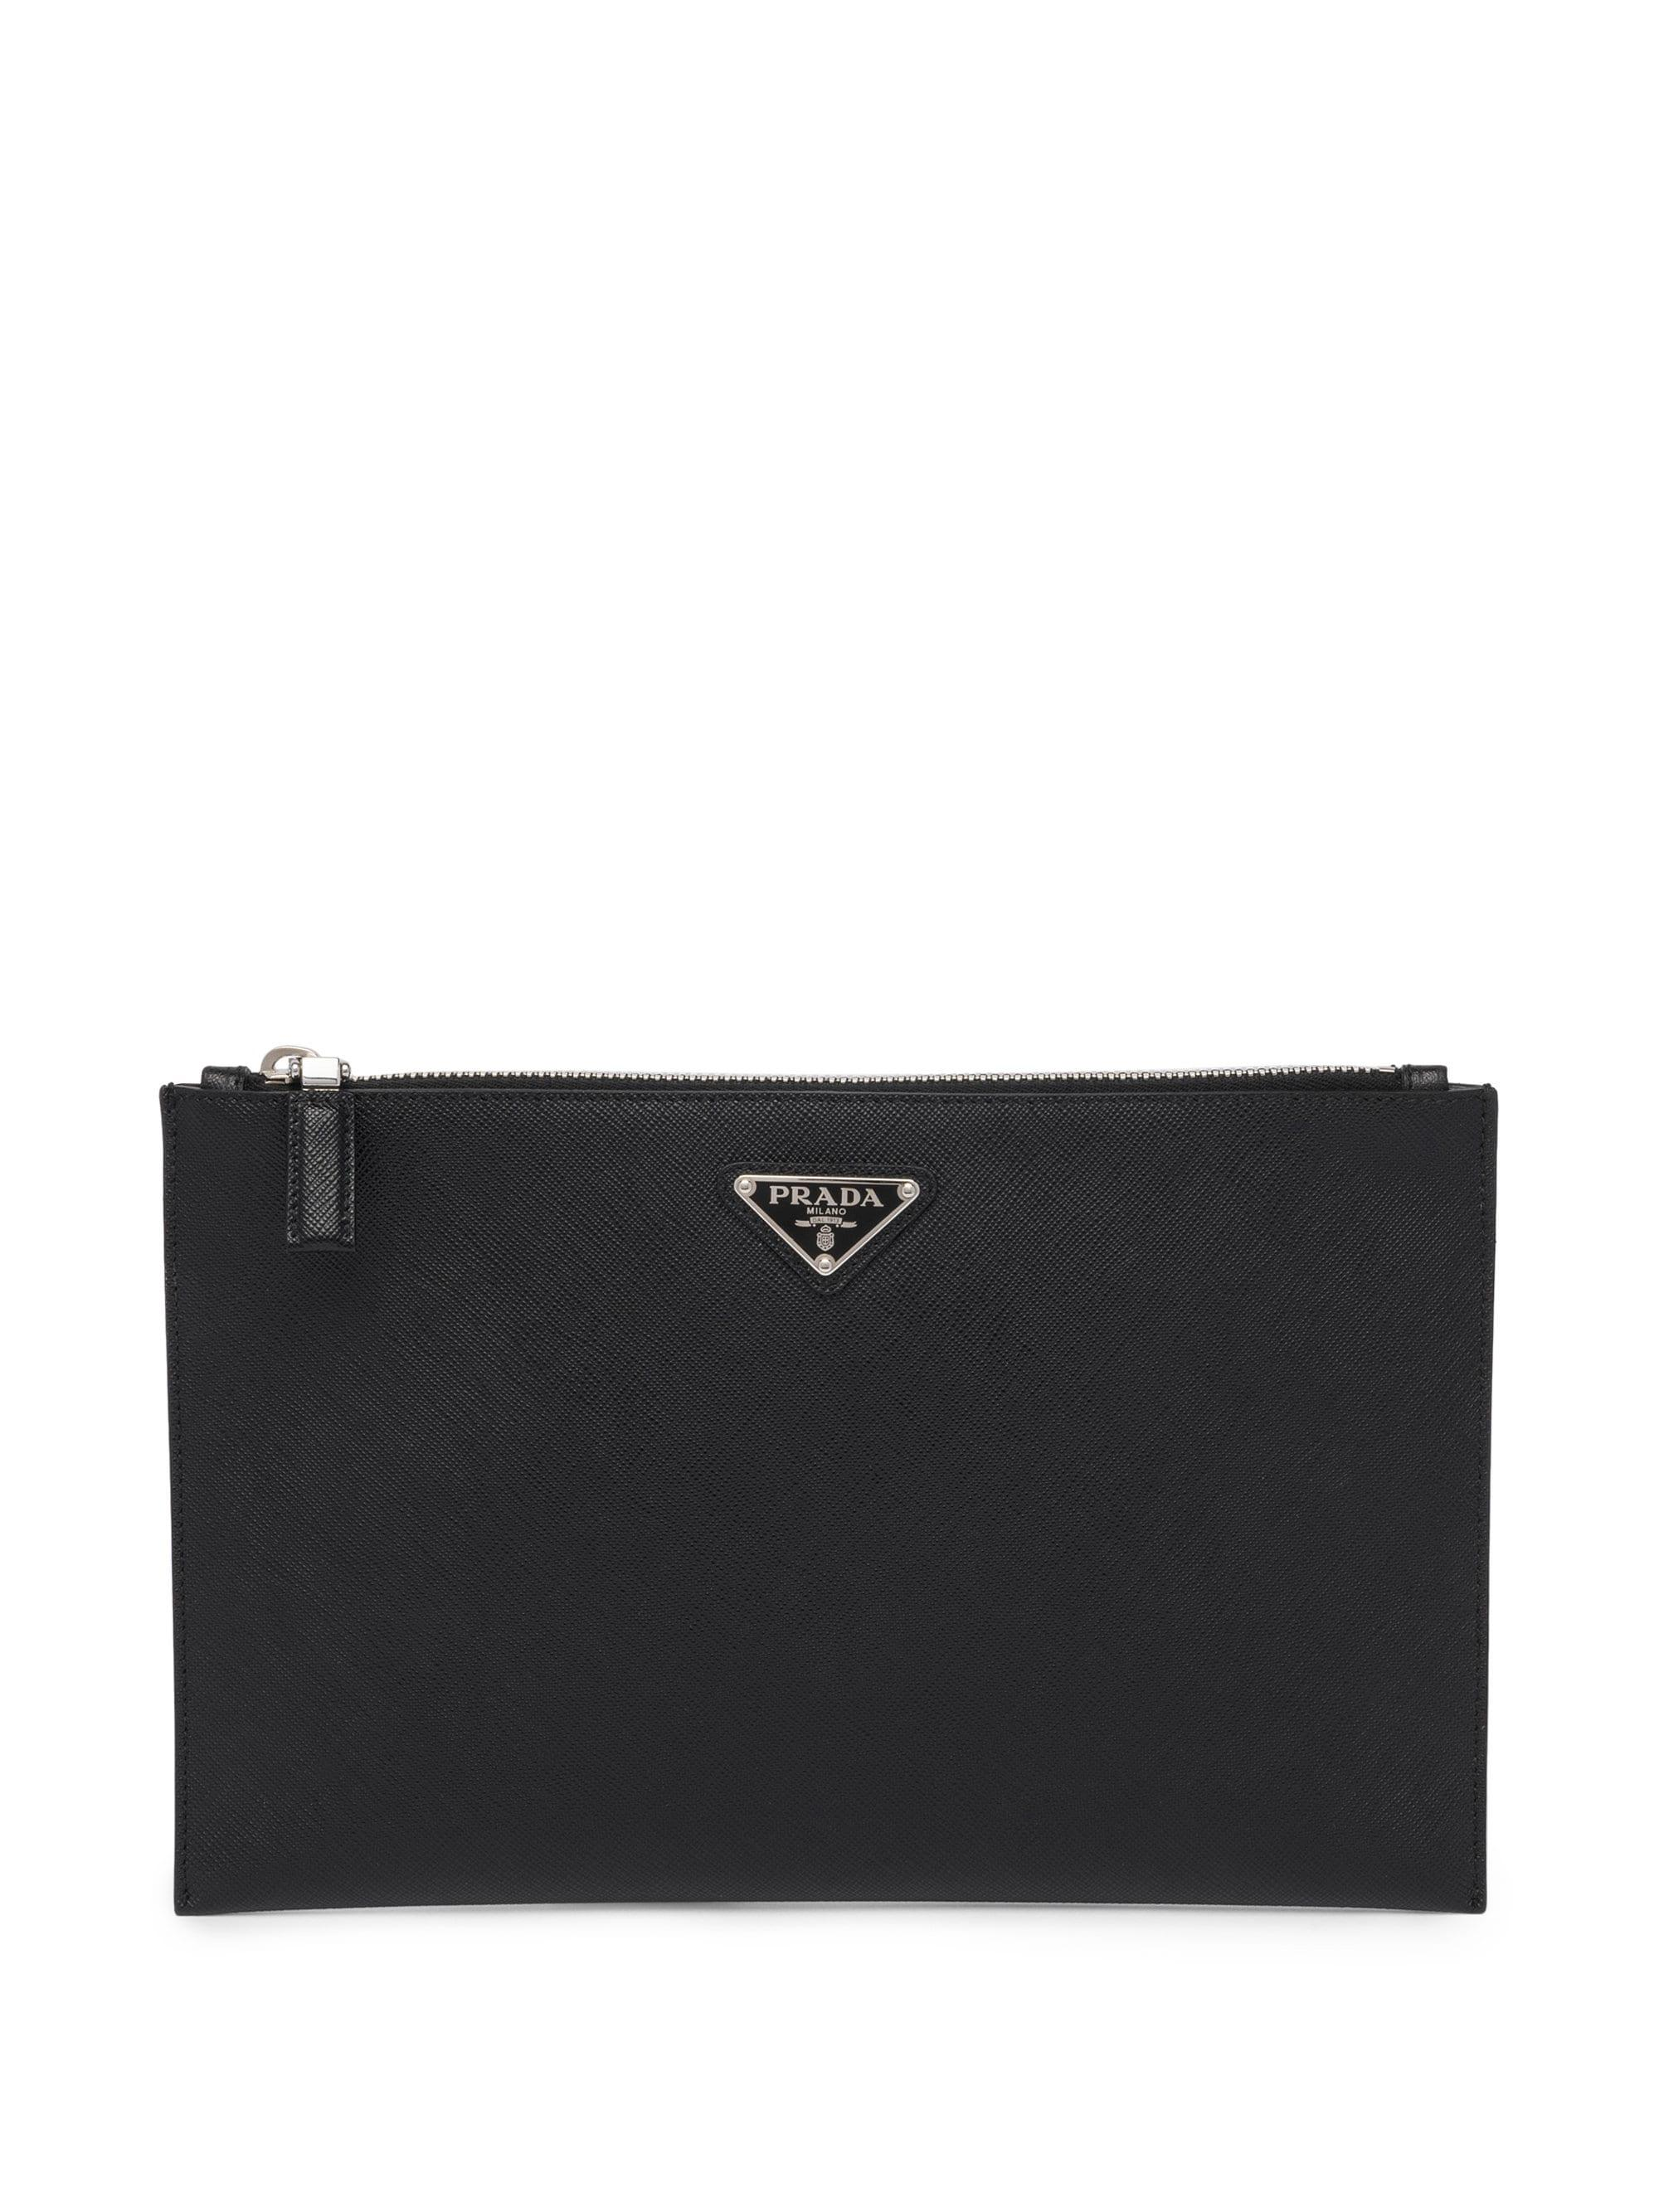 806685fdfb08 Prada Saffiano Leather Pouch in Black for Men - Lyst